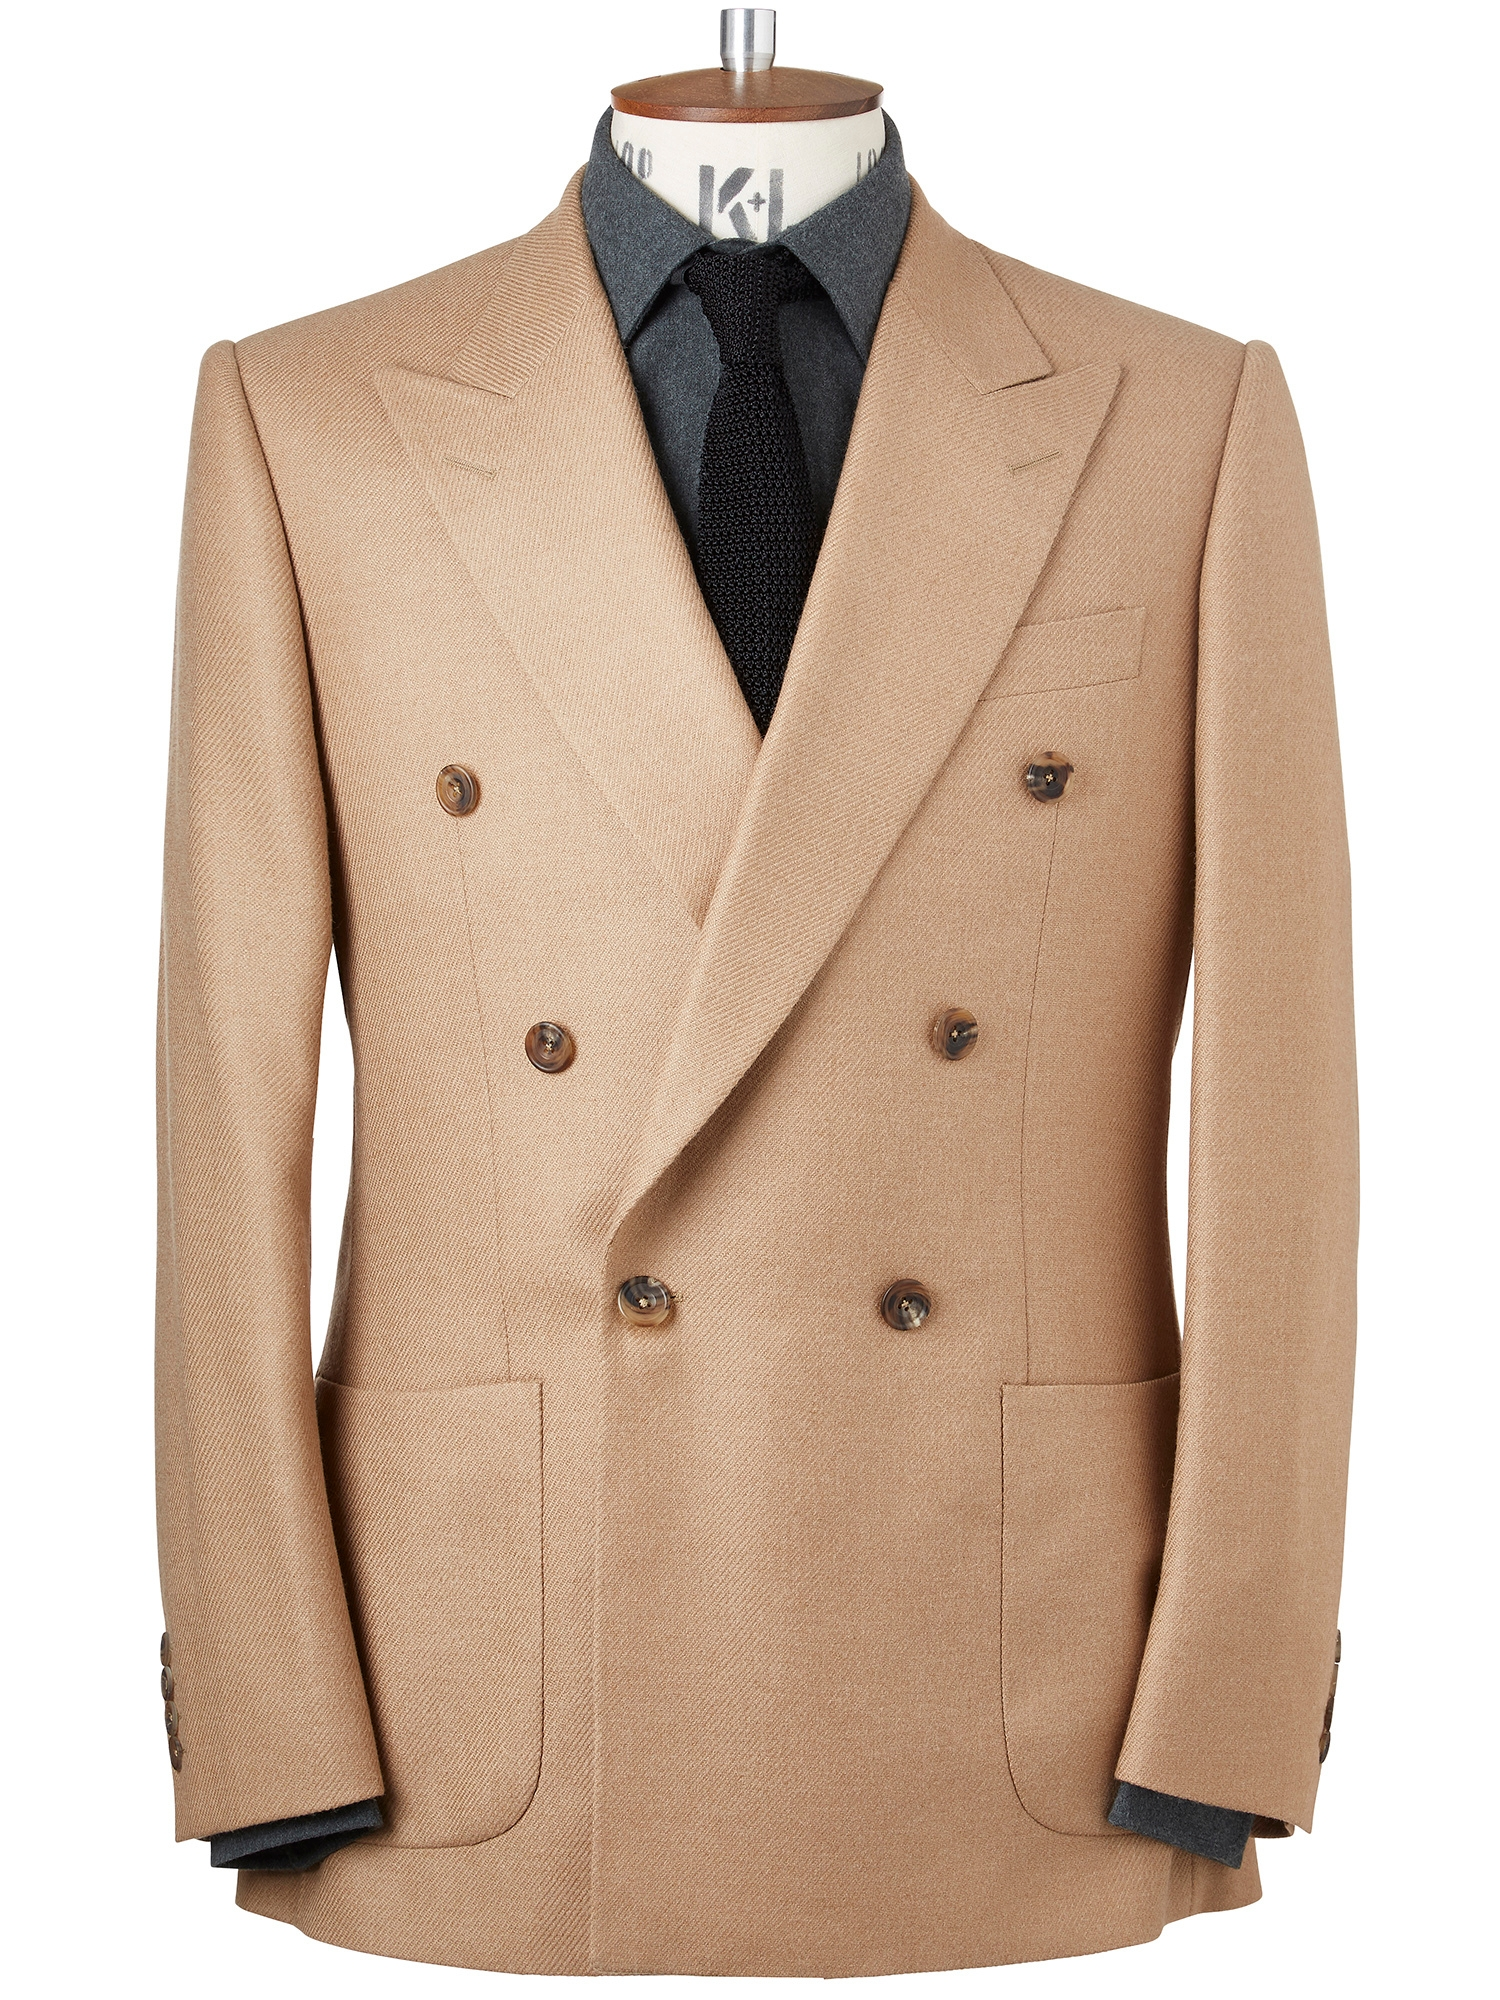 CHESTER BARRIE Camel Twill Kingly Jacket